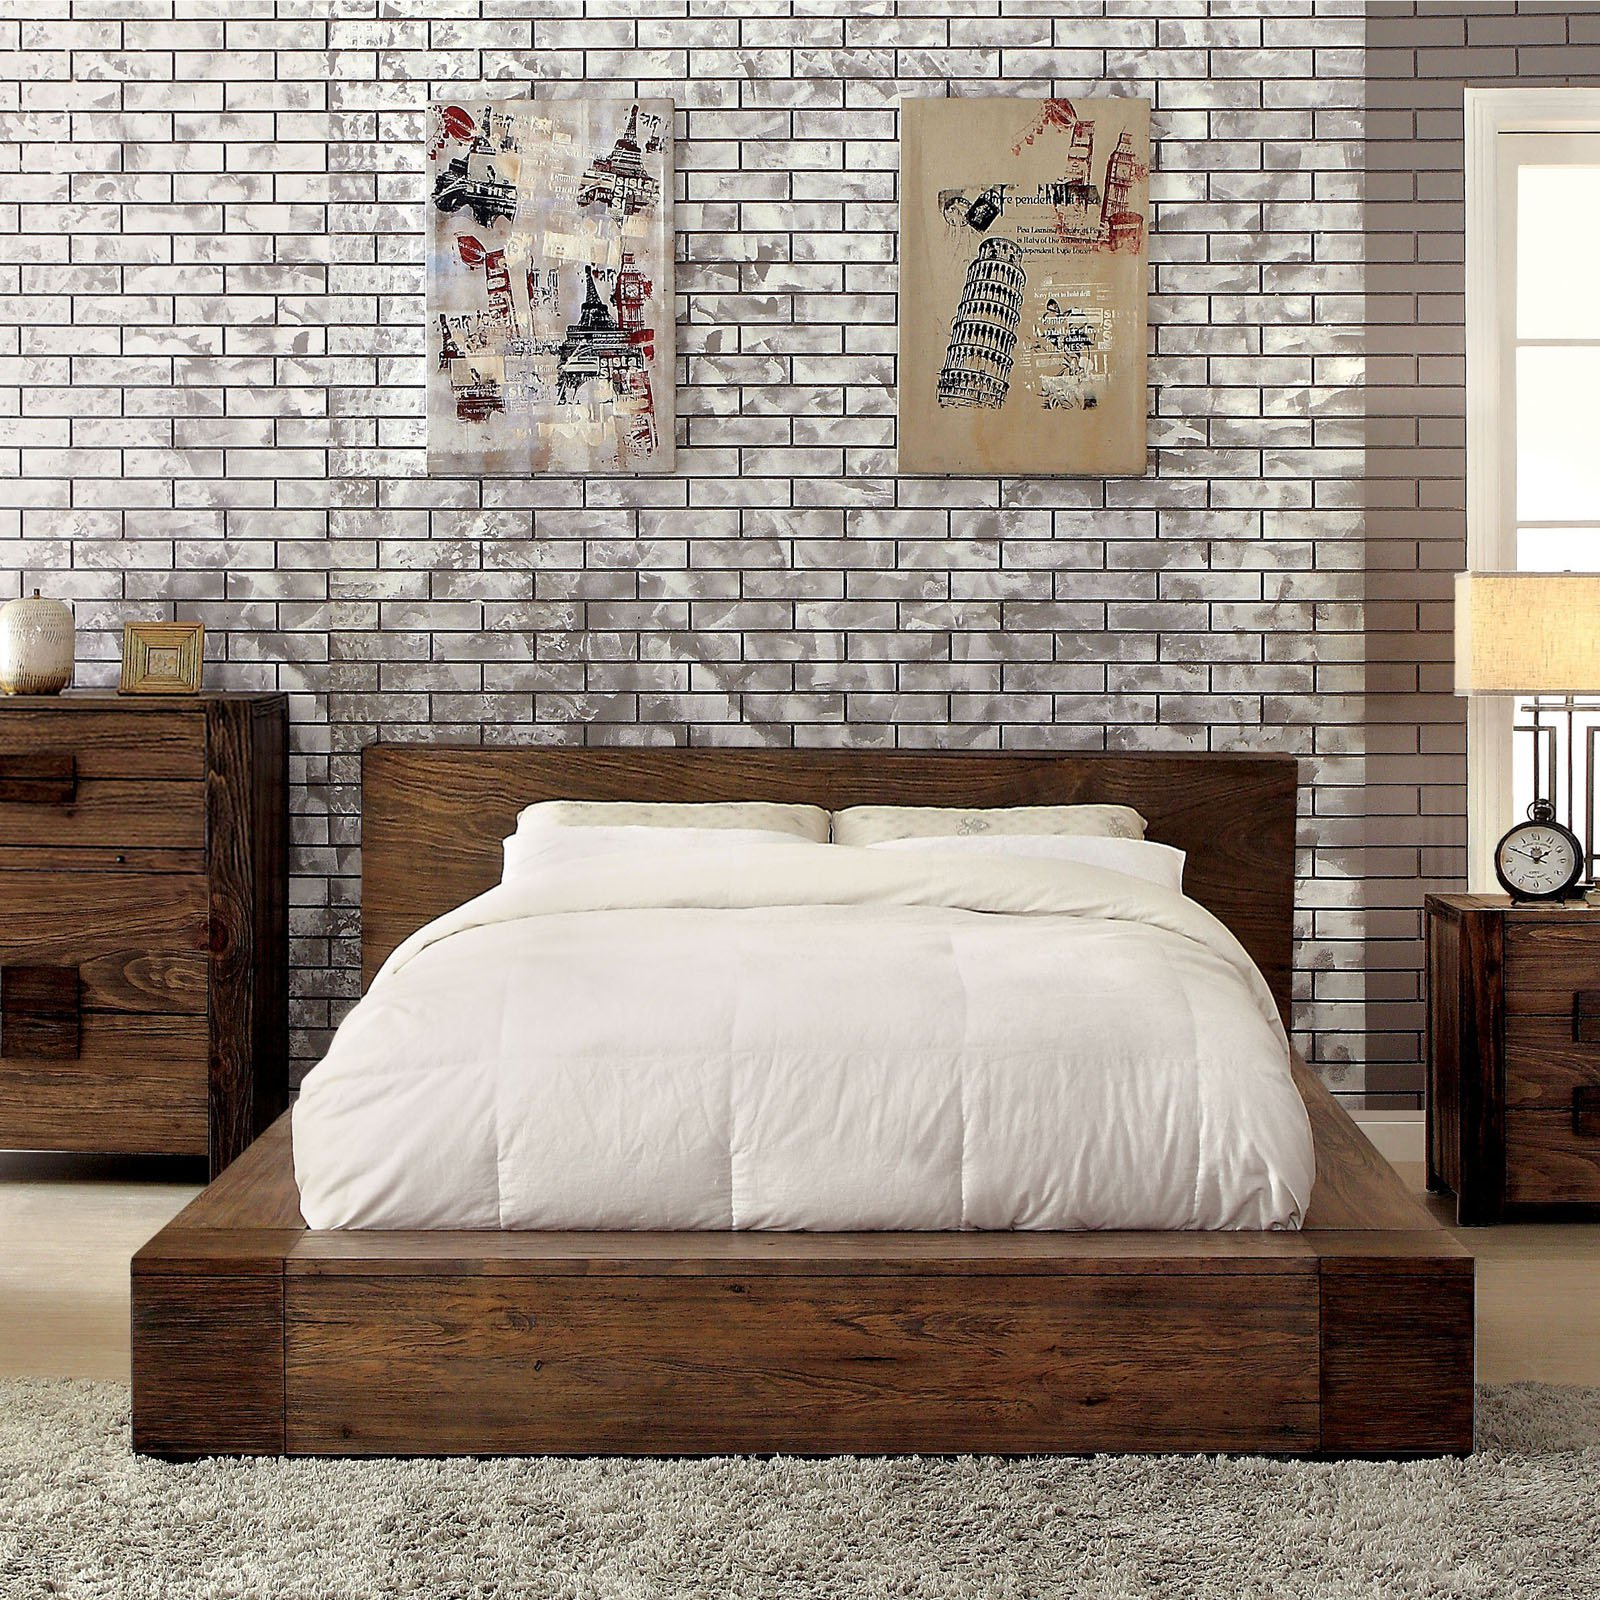 Furniture of America Oberon Low Profile Bed